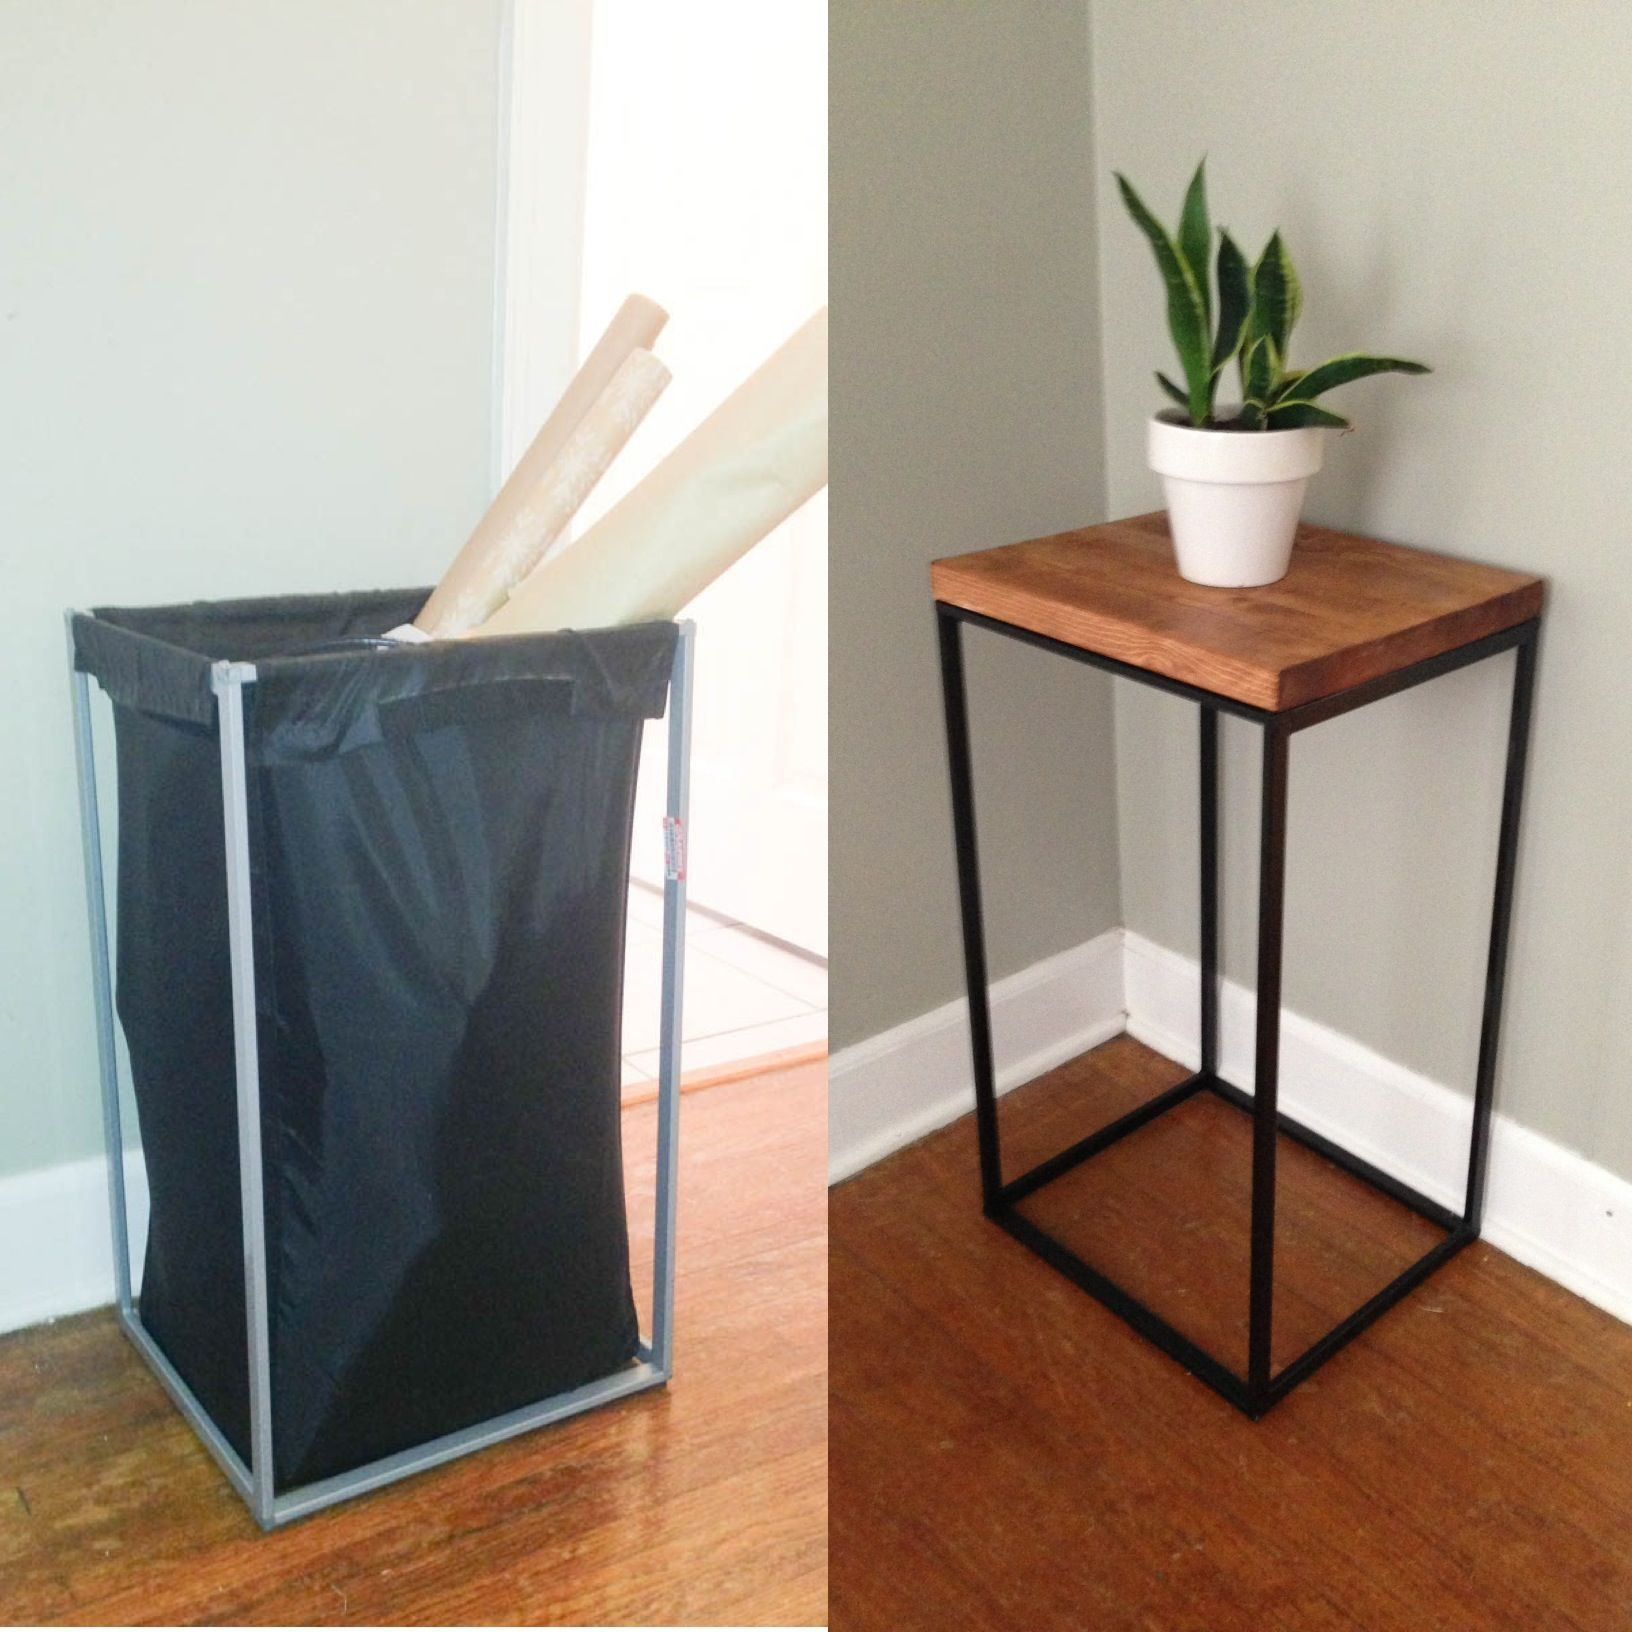 Diy Side Table From Old Ikea Laundry Hamper The Clever Bunny